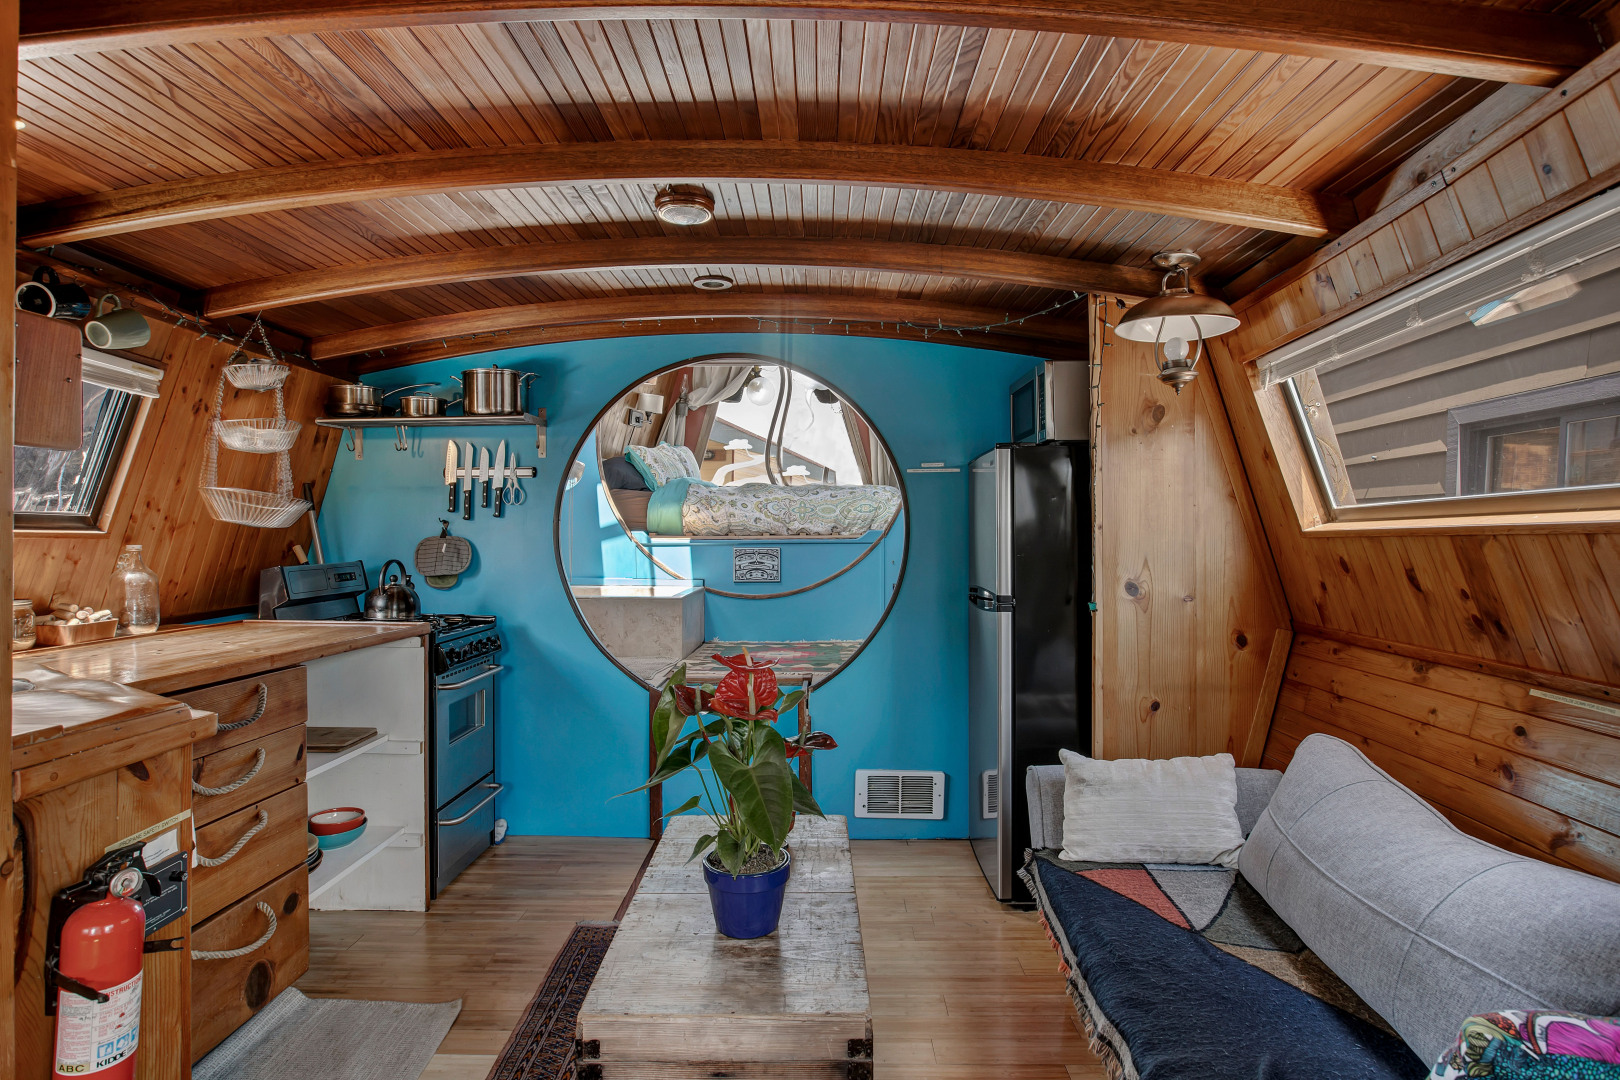 "Love Lake Union? Live on it! ""Turnip"" is a houseboat that can be your own little oasis, boasting bamboo/cork flooring, a Japanese style soaking tub/shower and a rooftop deck. It also happens to be the lowest priced houseboat on the lake! Built in 1987, Turnip has an interior of 354 square feet and sits on a 444 square foot lot. It can be yours for $175,000,{&nbsp;}<a  href=""https://1613556.rsir.homes/"" target=""_blank"" title=""https://1613556.rsir.homes/"">more info online</a>. (Image:{&nbsp;}<a  href=""https://www.instagram.com/apnwphotographer/"" target=""_blank"" title=""https://www.instagram.com/apnwphotographer/"">Nicolas Gerlach / @apnwphotographer</a>){&nbsp;}"